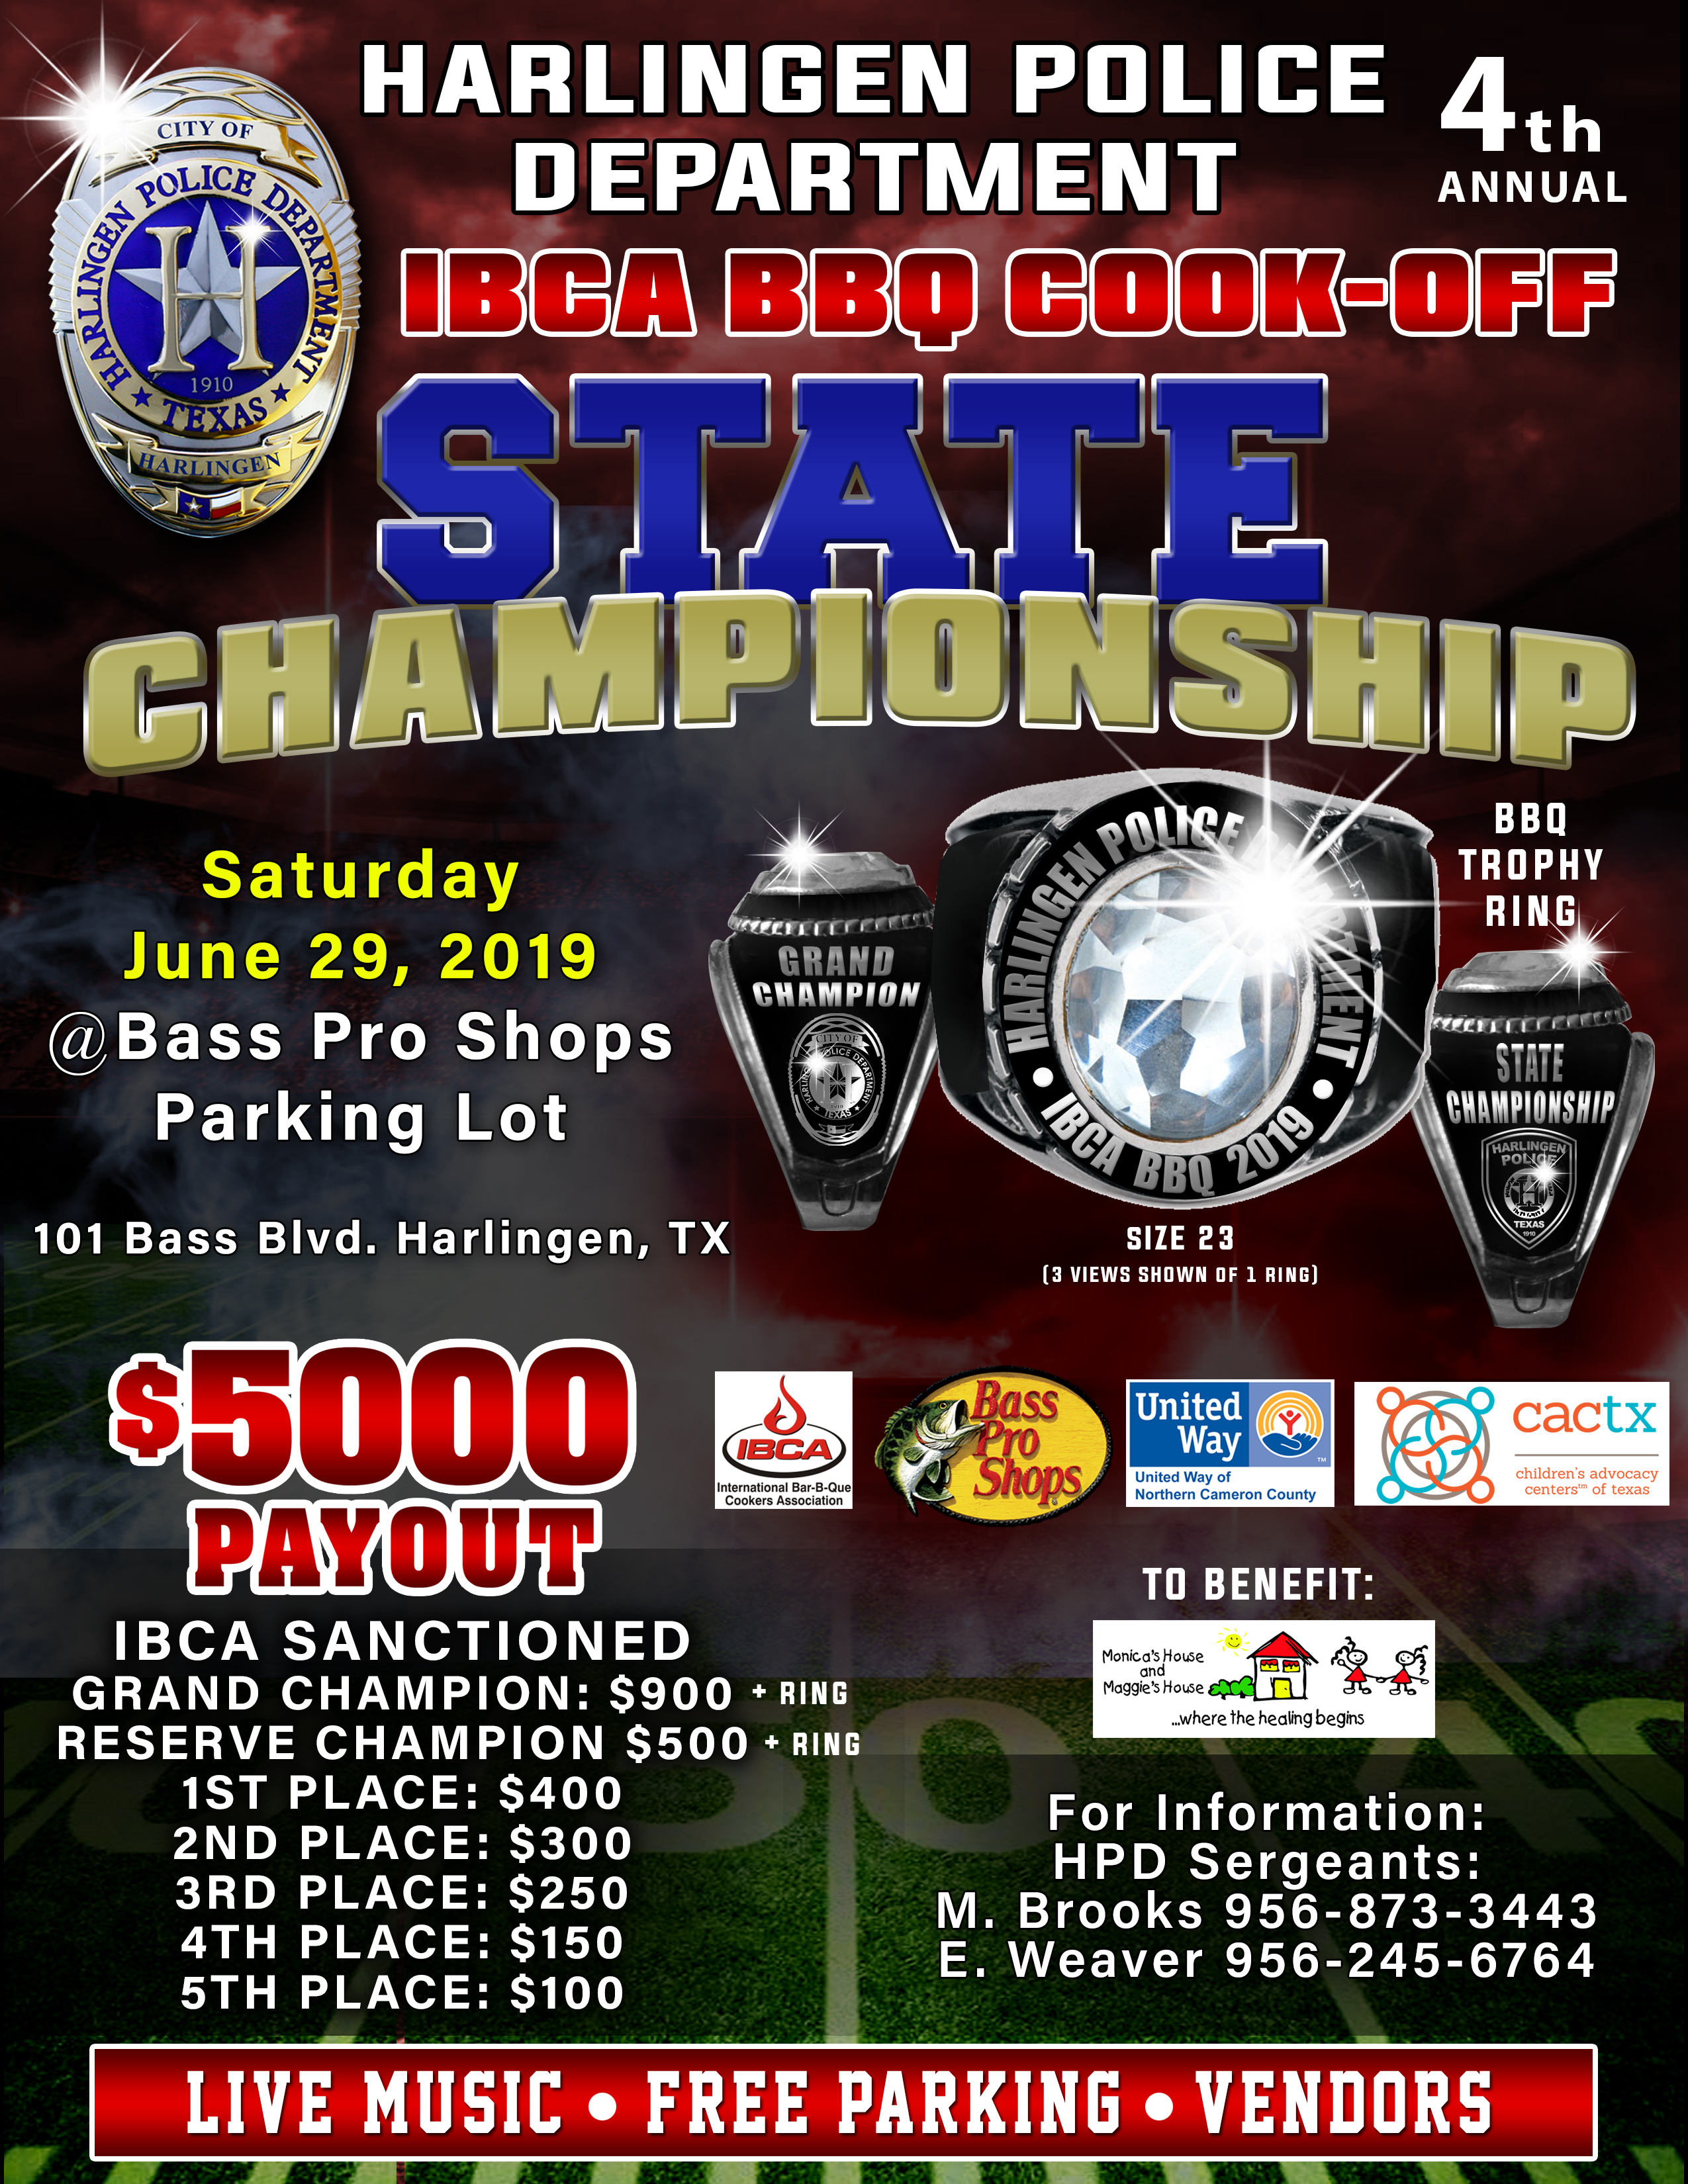 4th Annual Harlingen PD IBCA BBQ Cook-Off State Championship